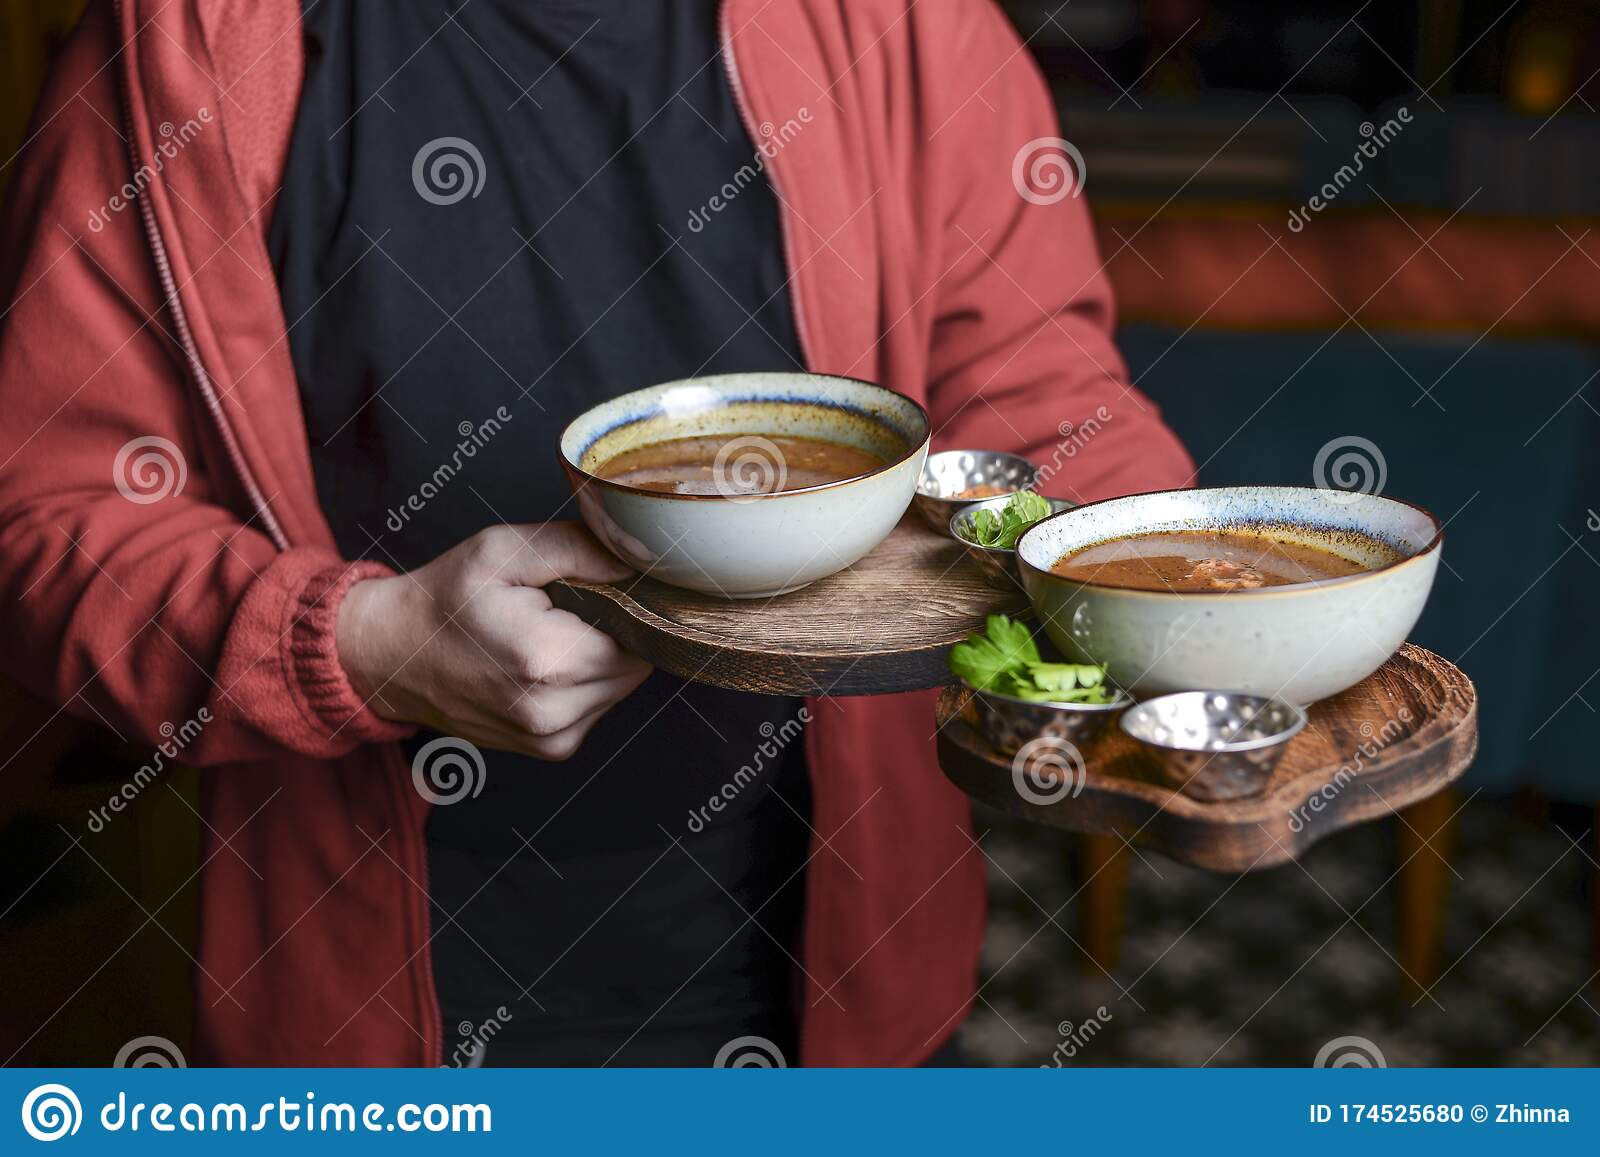 Waiter Wearing Unifrom Serving Two Bowls Of Hot Soup And Fresh Bread Restaurant Photography Concept Stock Photo Image Of Caucasian Mature 174525680